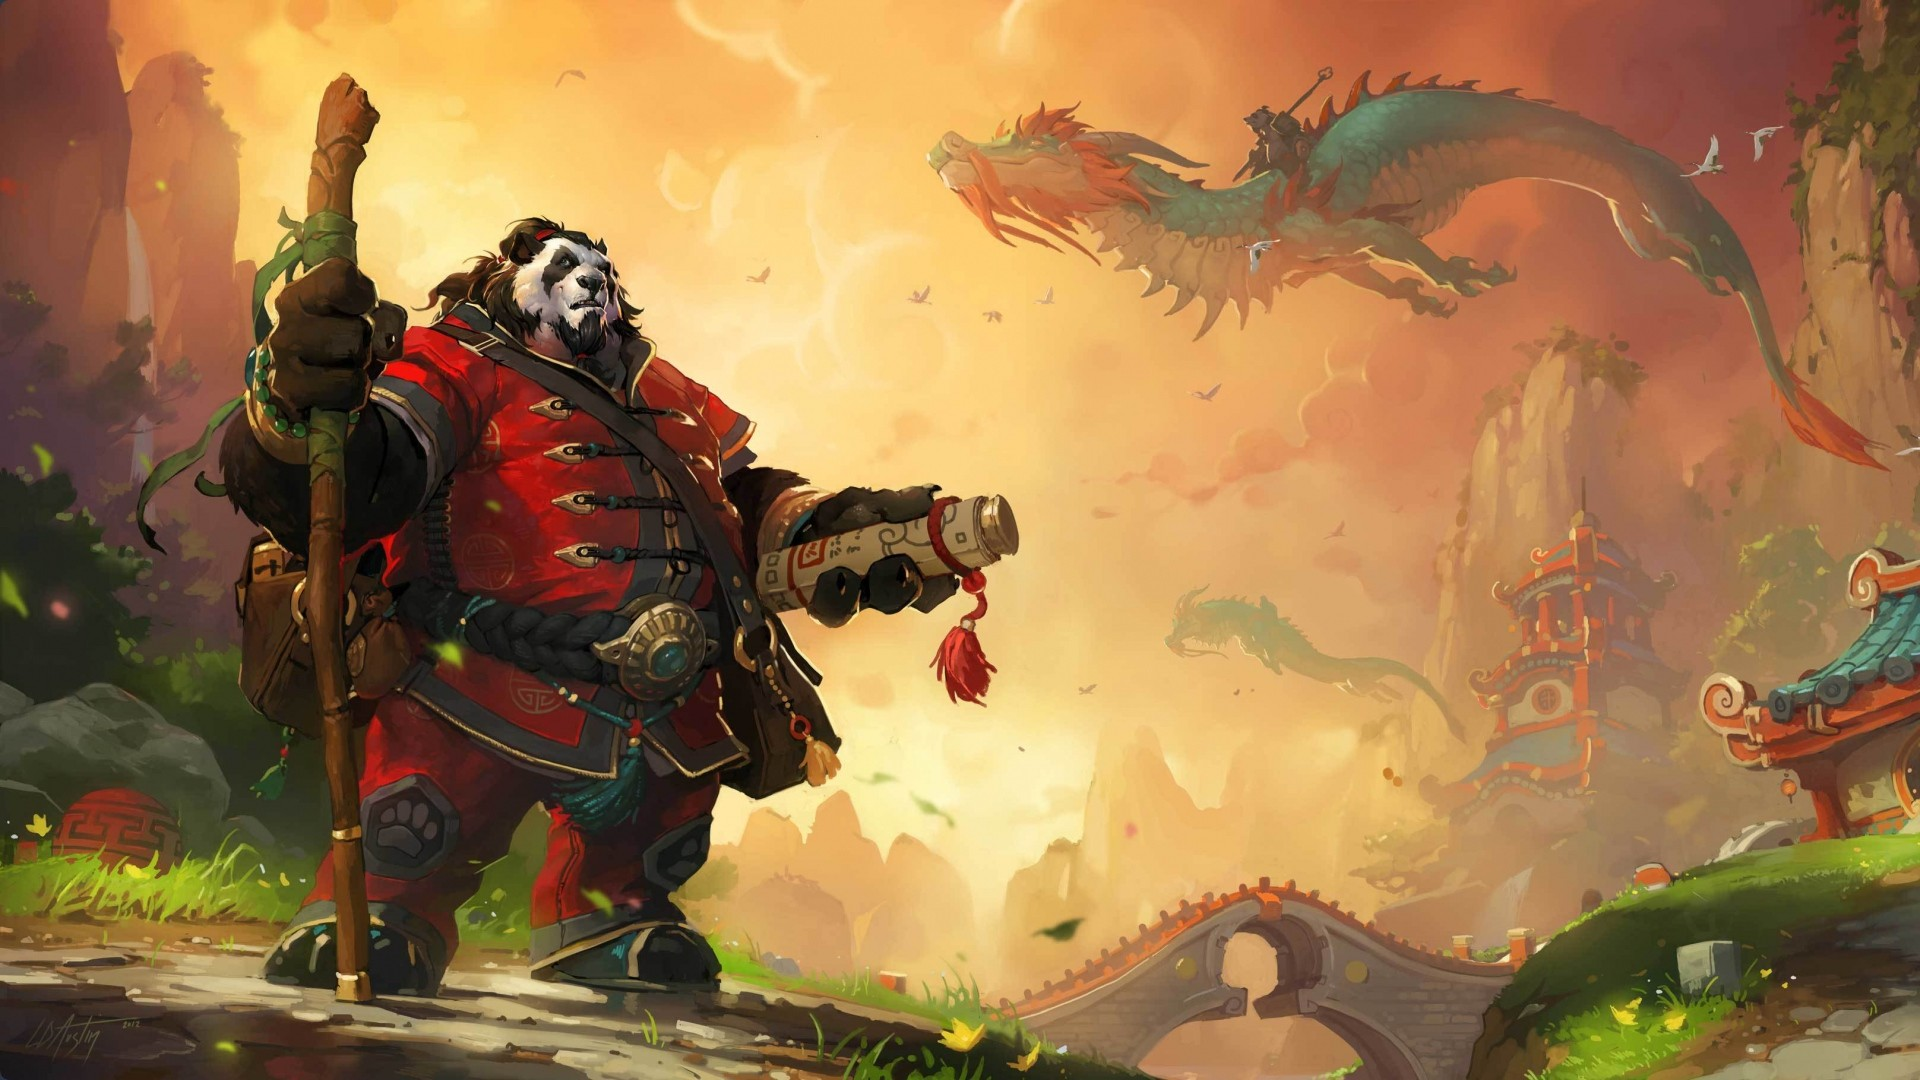 1920x1080 Full HD 1080p Mists of pandaria Wallpapers HD, Desktop Backgrounds